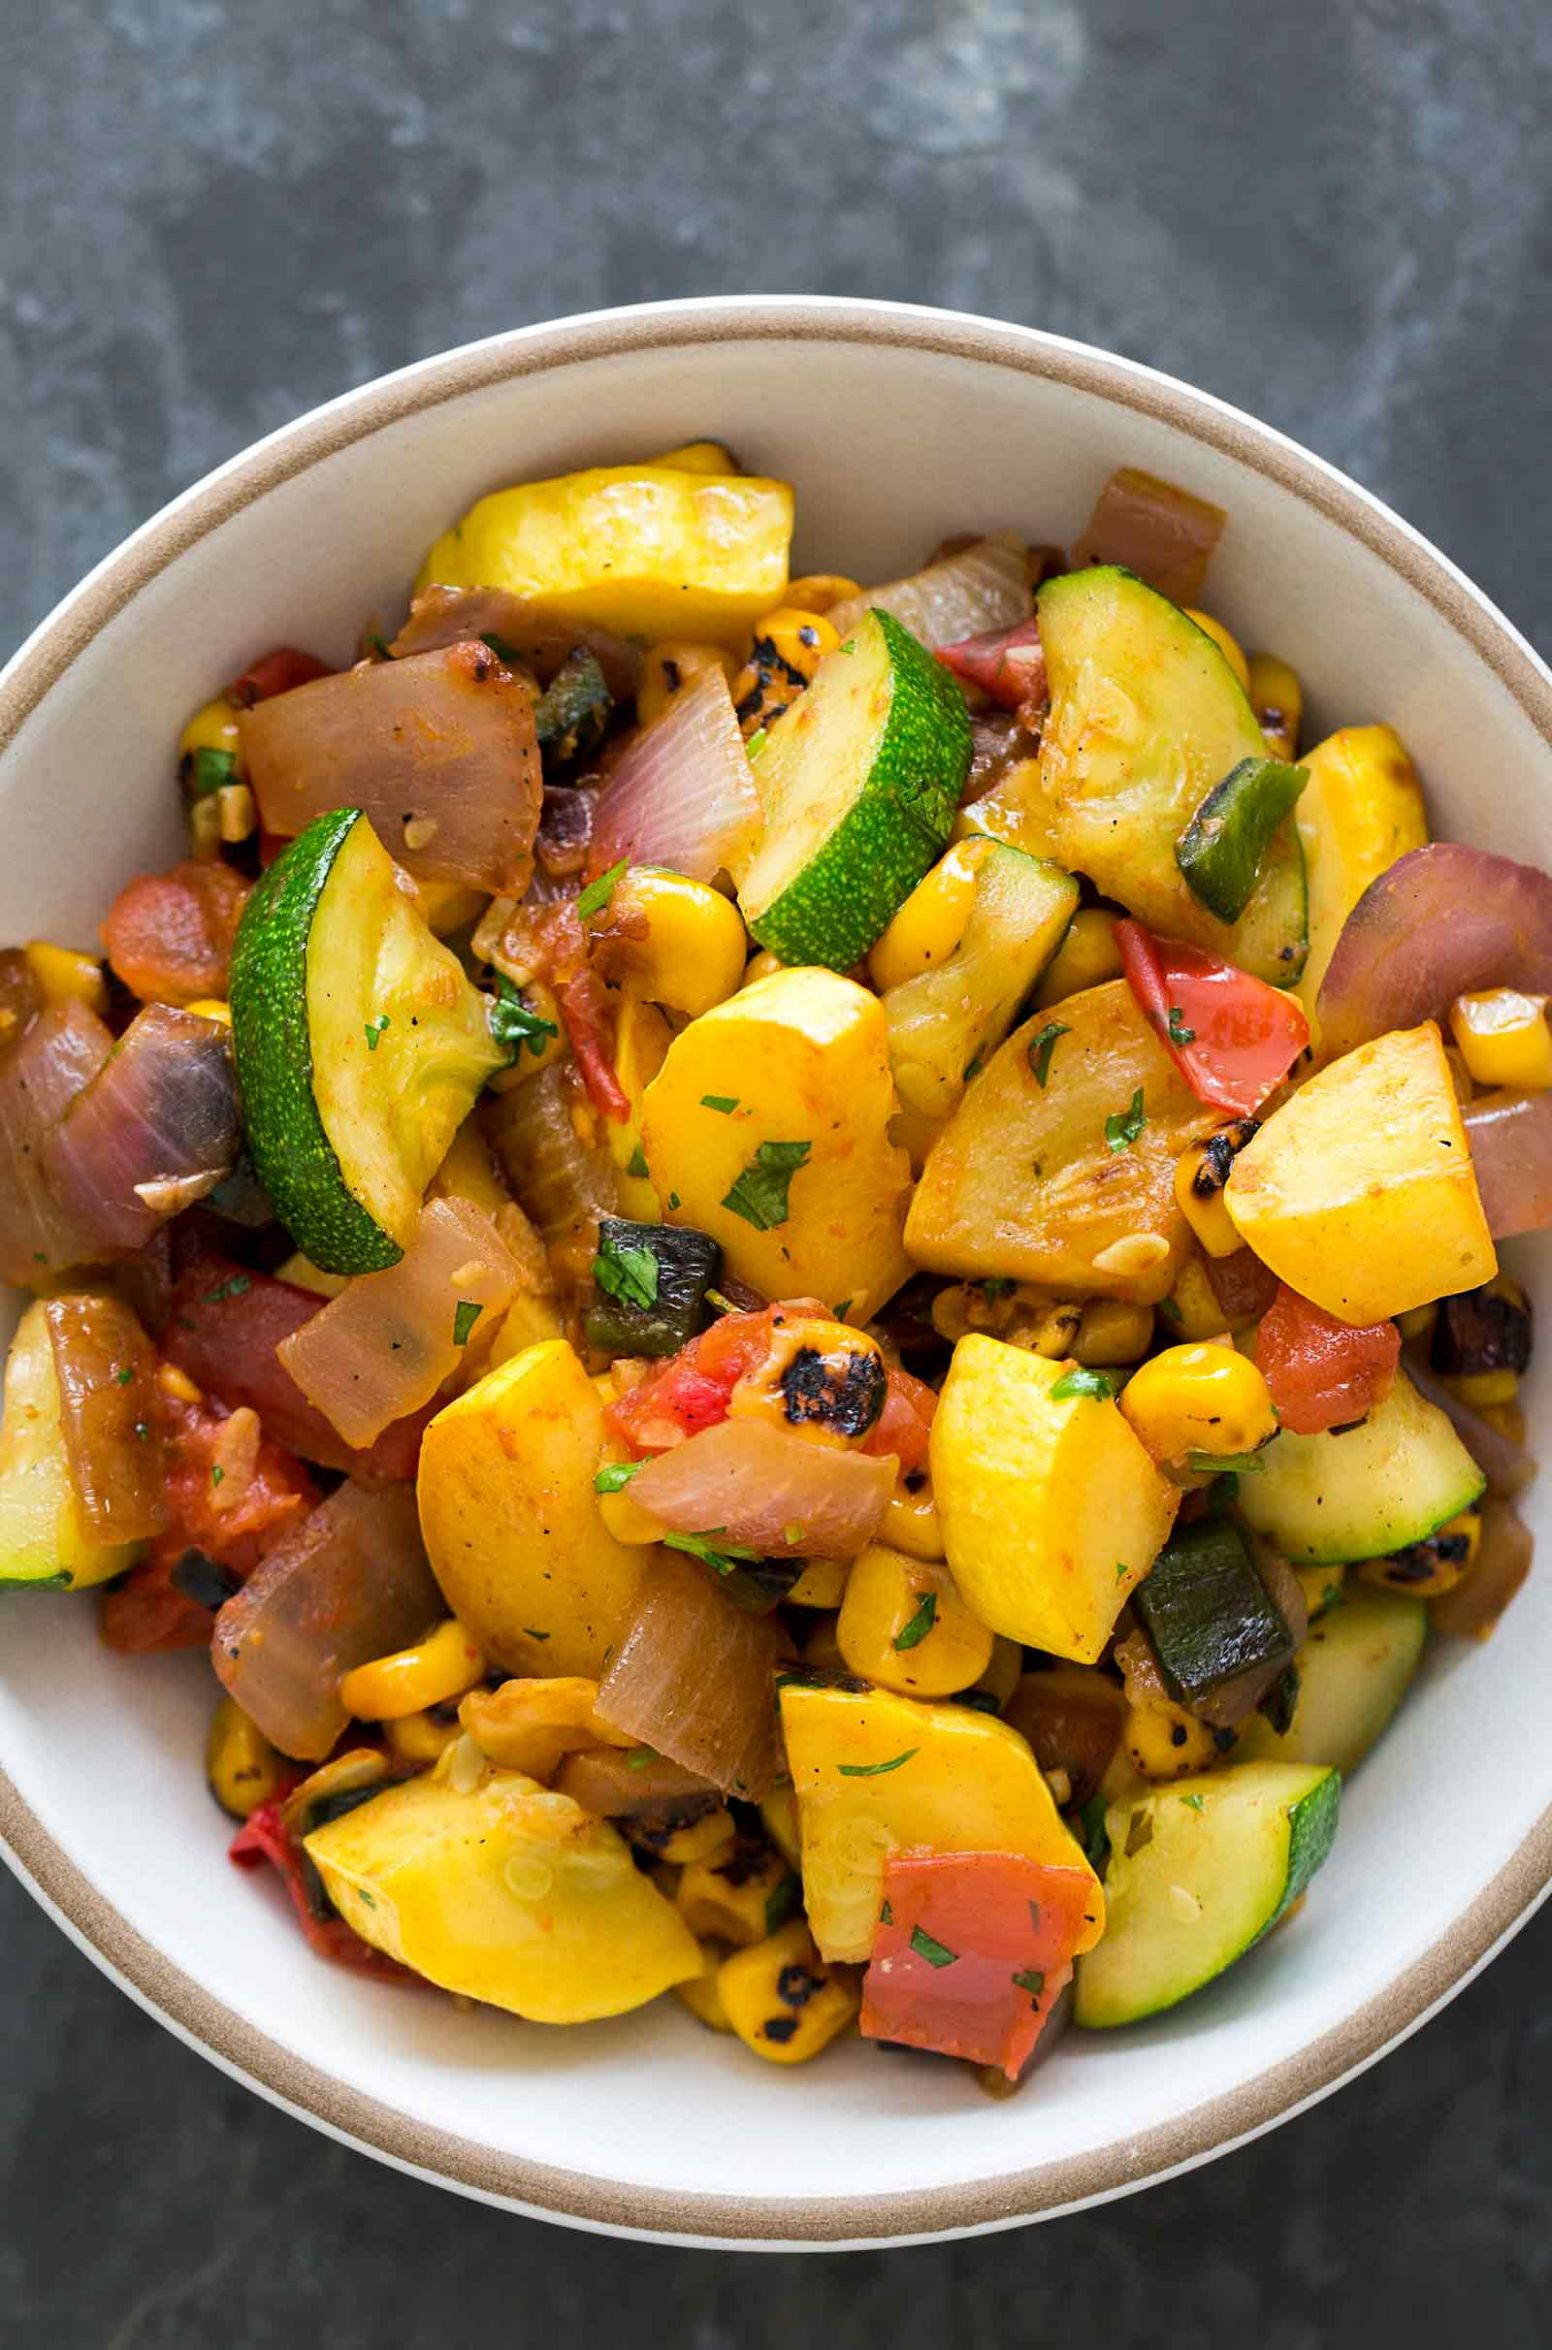 Summer Squash Green Chile Stir Fry - Recipes For Summer Squash And Zucchini